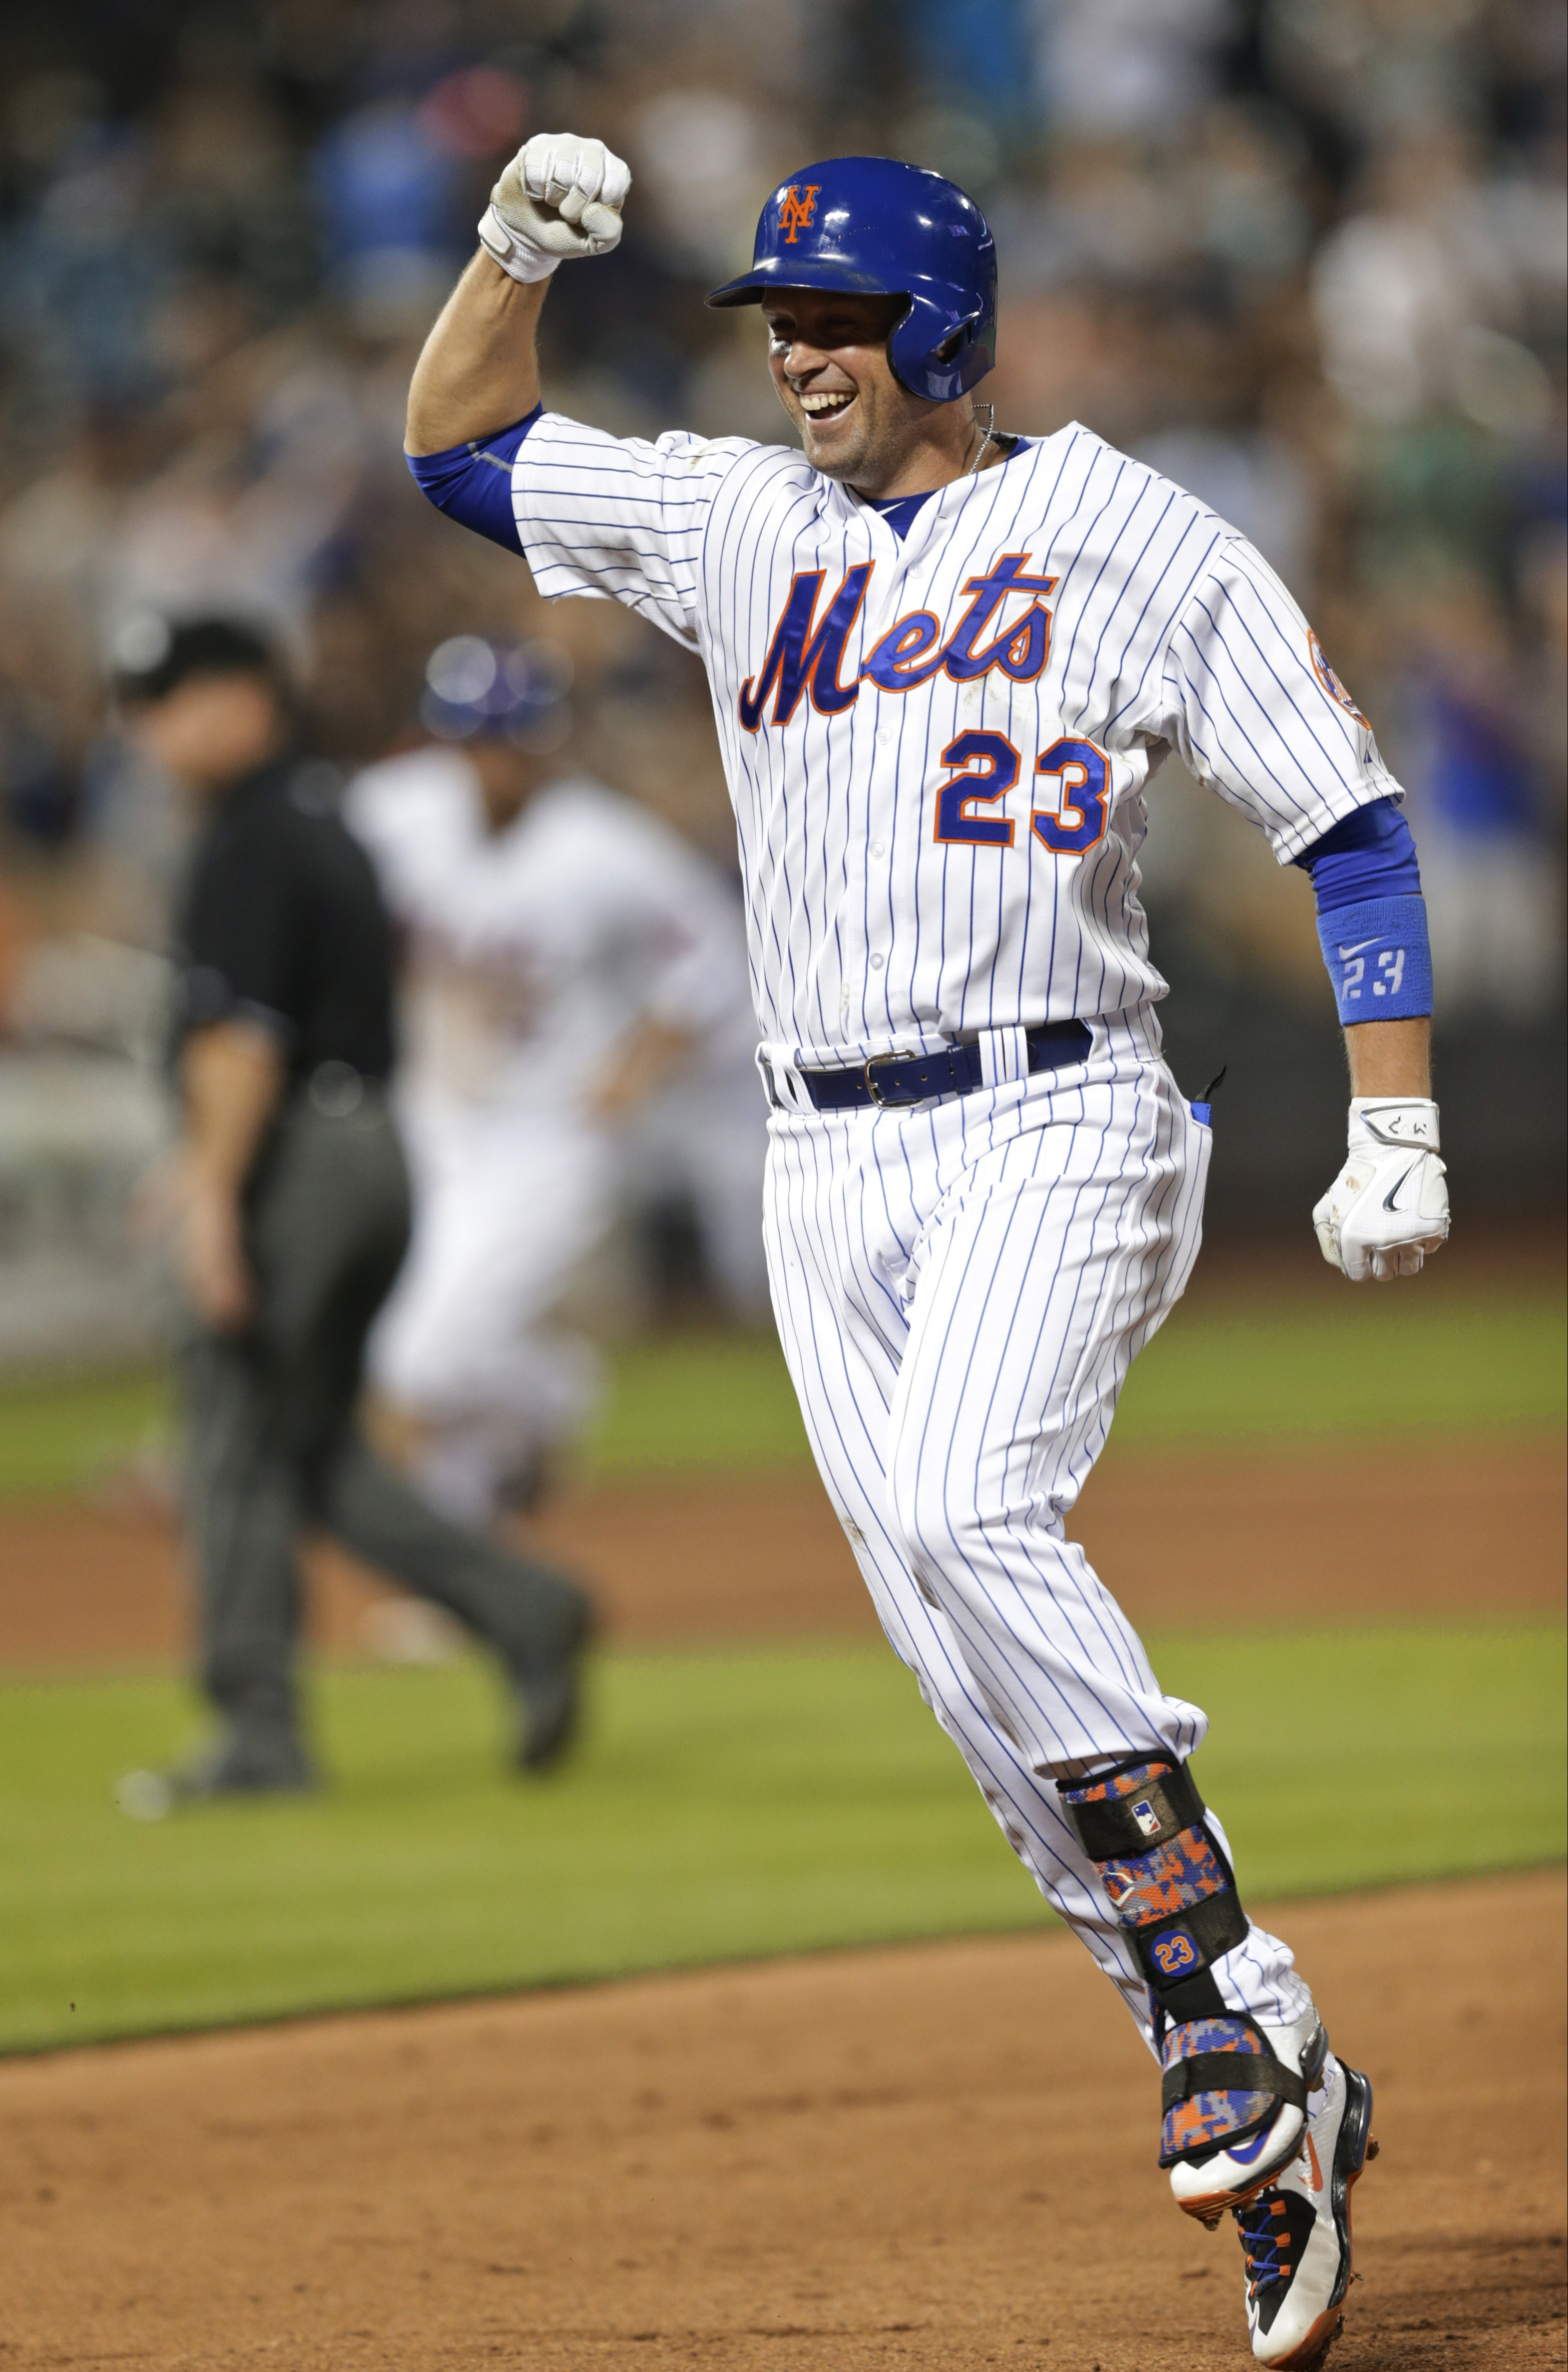 New York Mets' Michael Cuddyer celebrates after hitting a walk-off single against the San Francisco Giants in a baseball game Thursday, June 11, 2015, in New York. The Mets won 5-4. (AP Photo/Frank Franklin II)